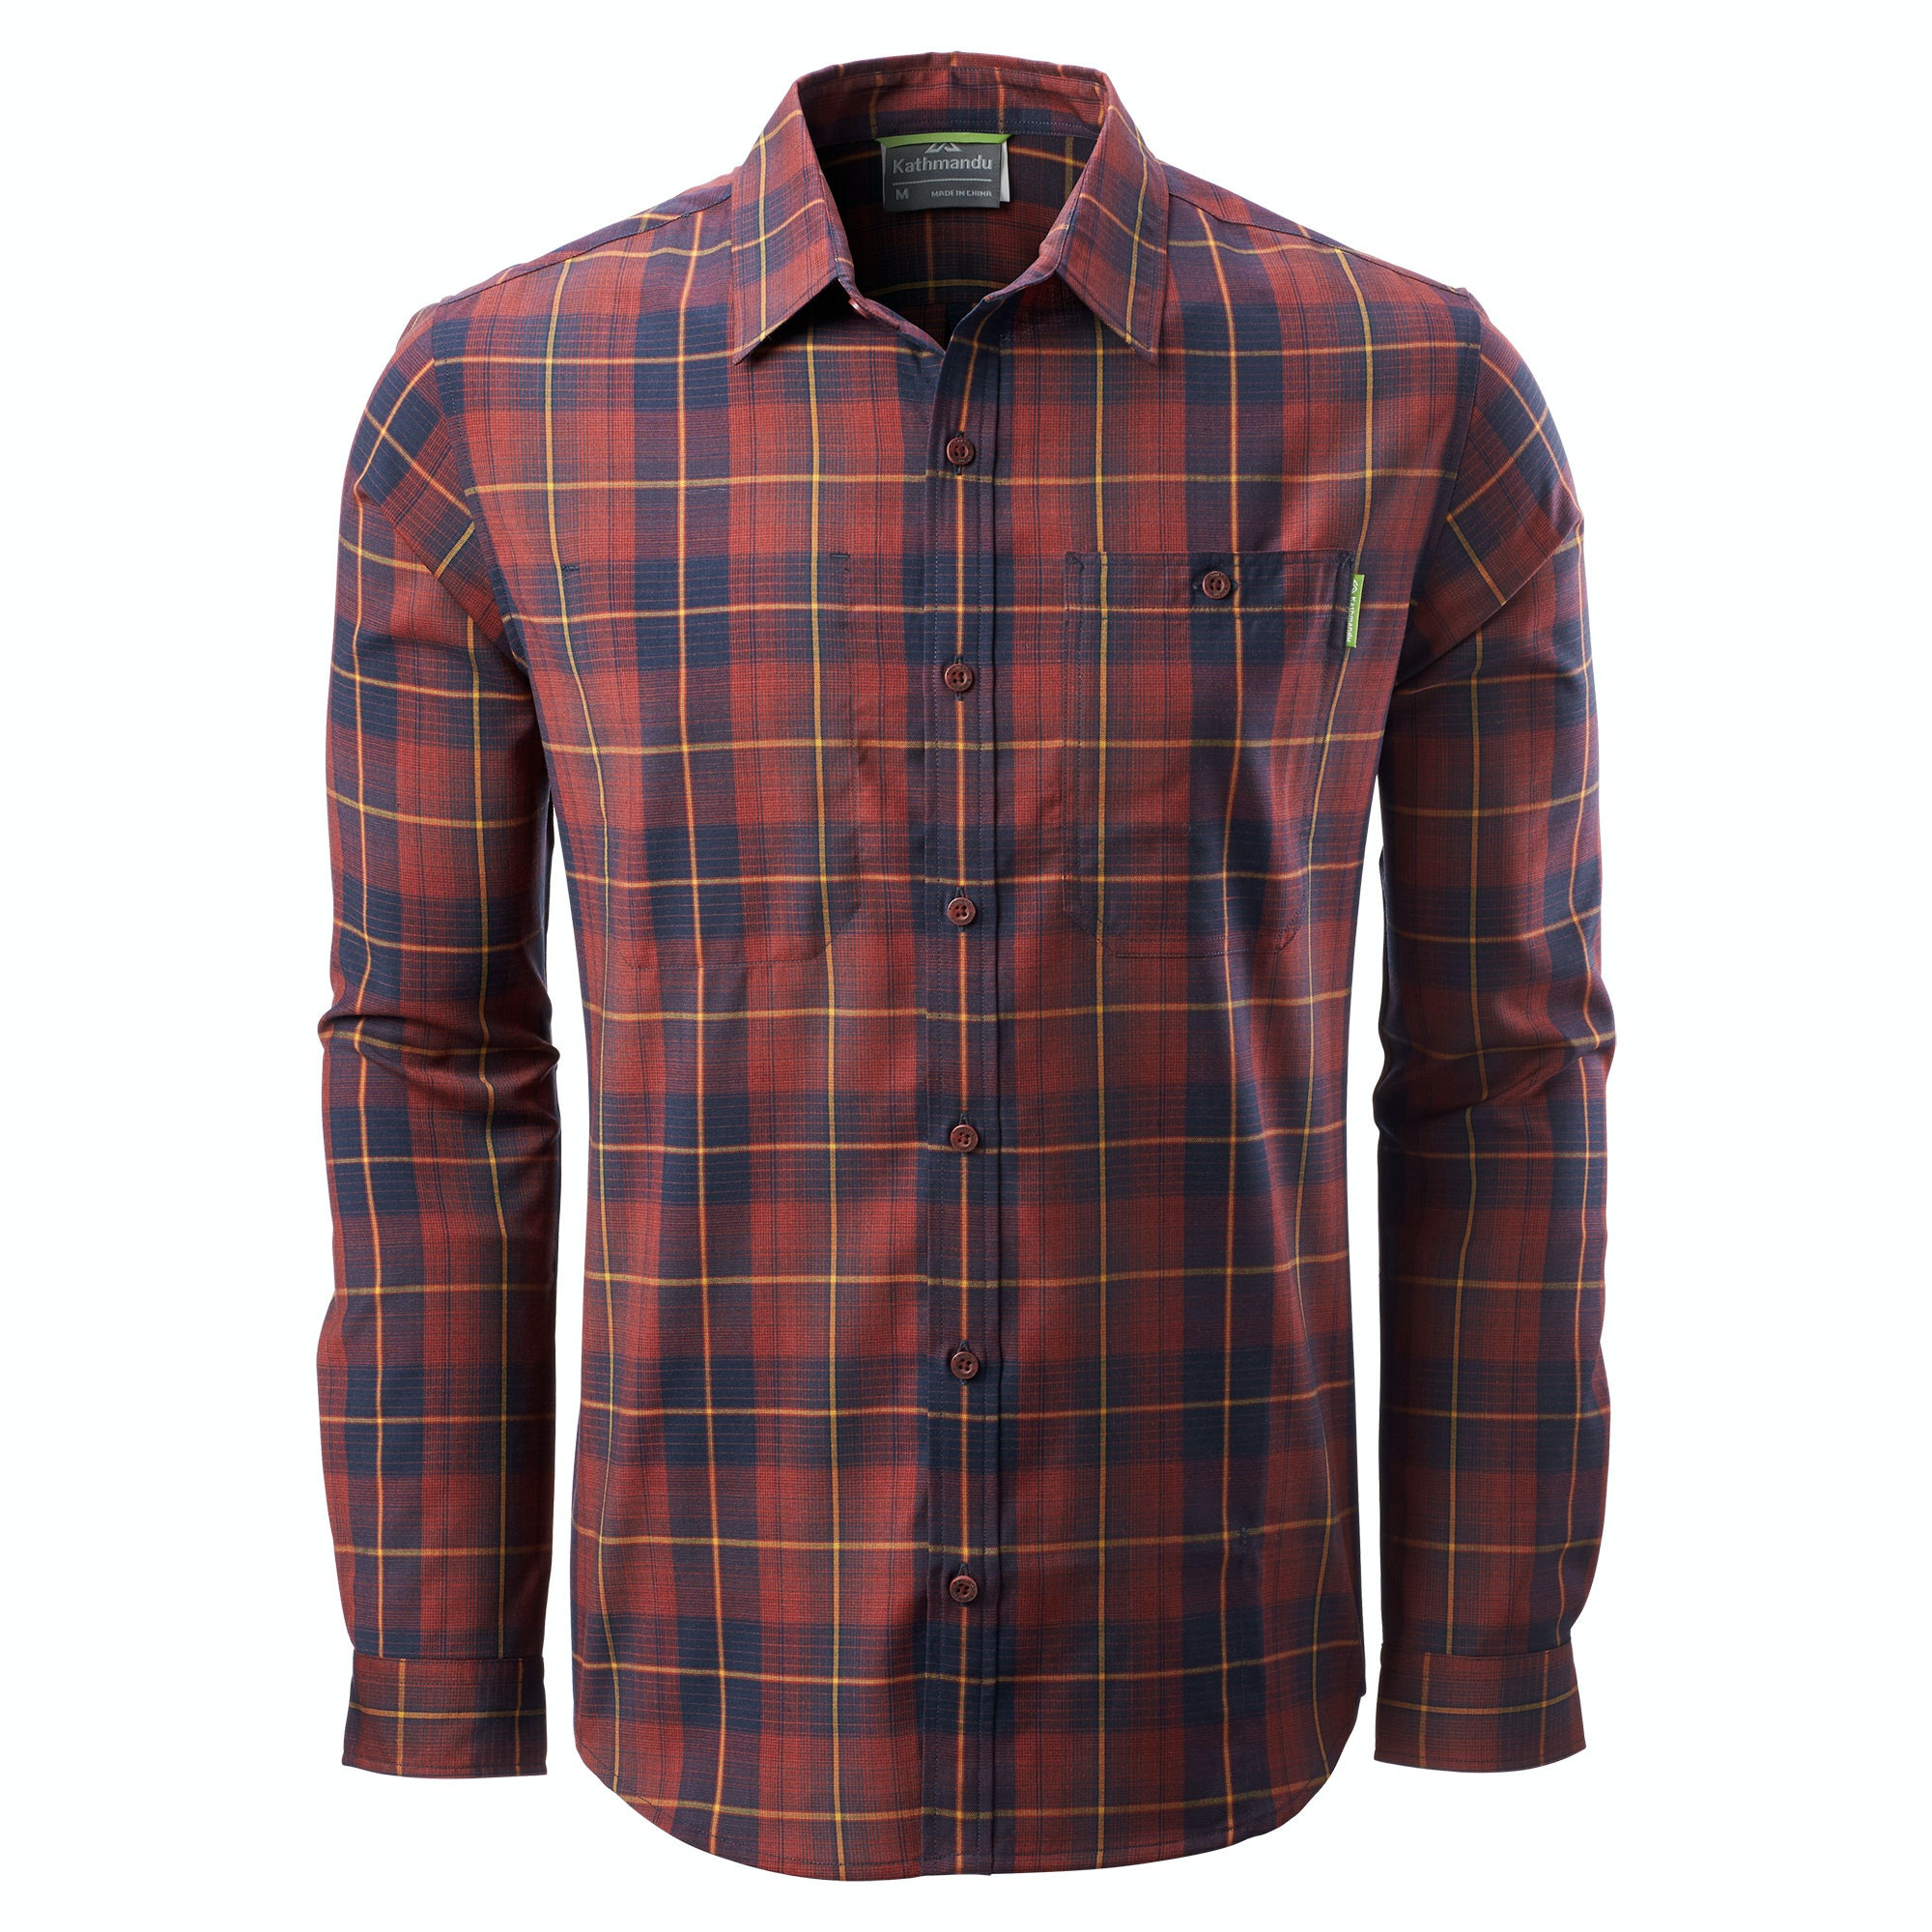 Kathmandu tomar mens slim fit merino full button checked for Merino wool shirts for travel